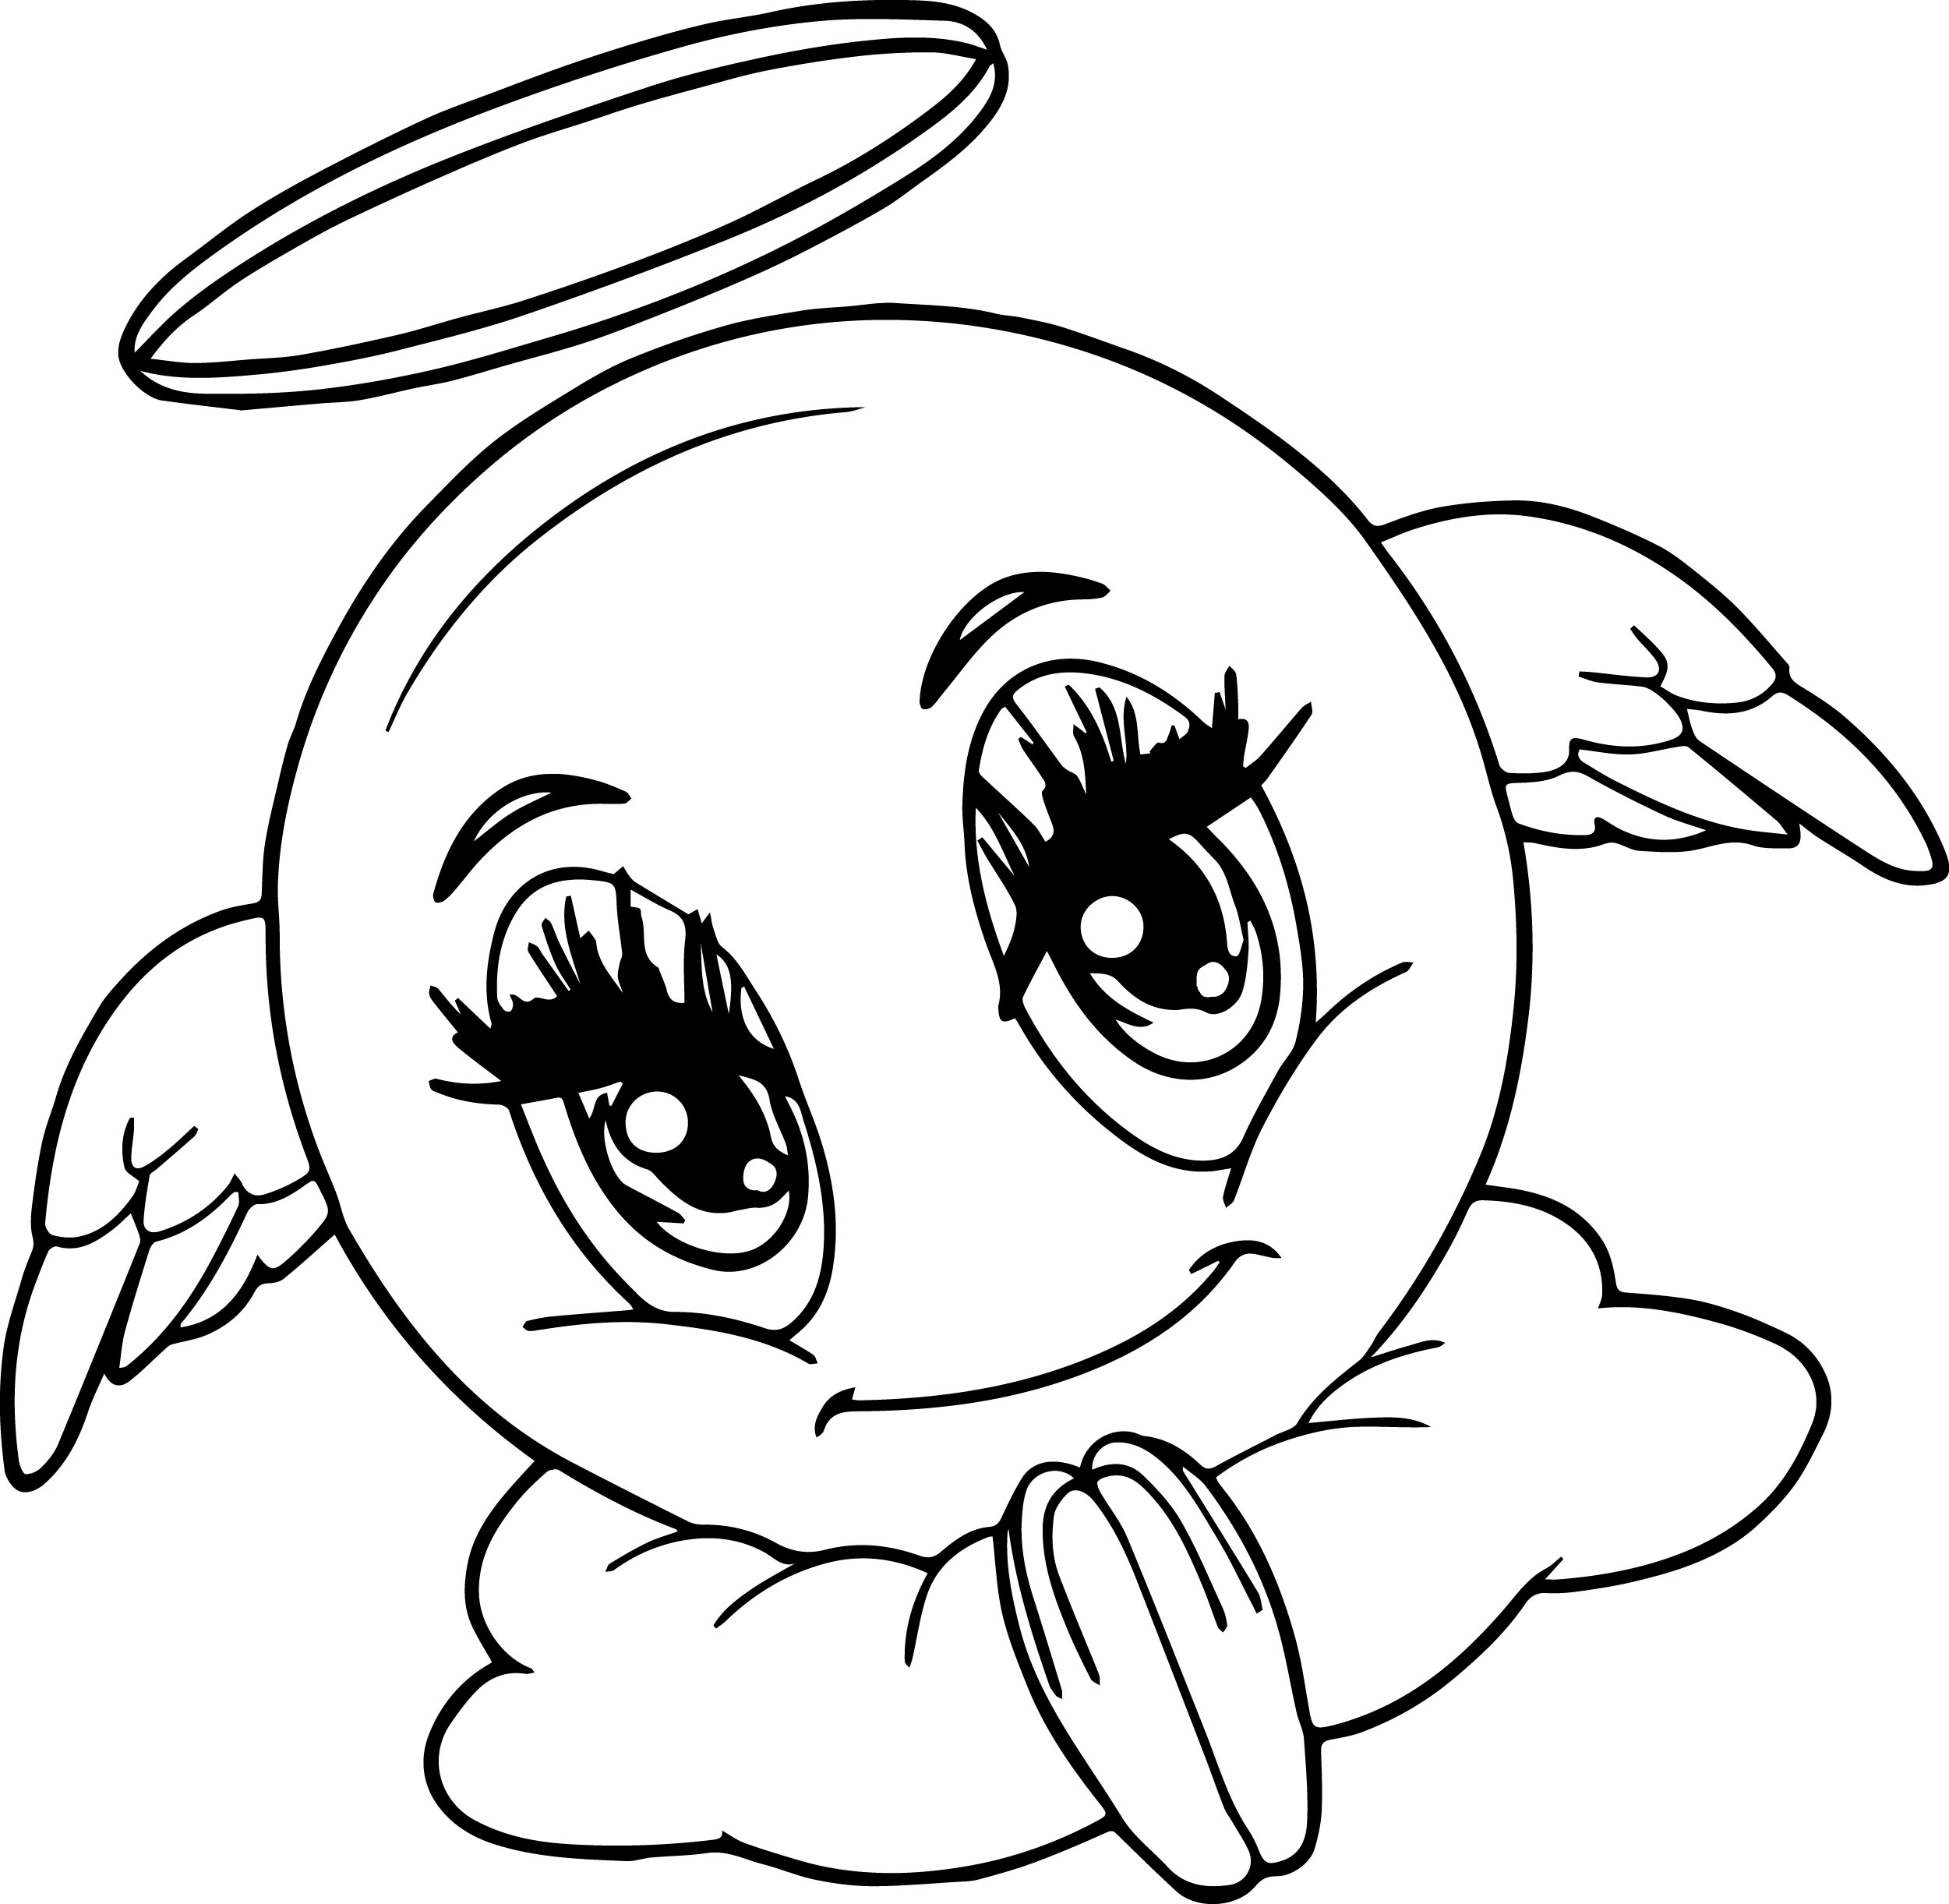 Emoji Coloring Pages Best Coloring Pages For Kids